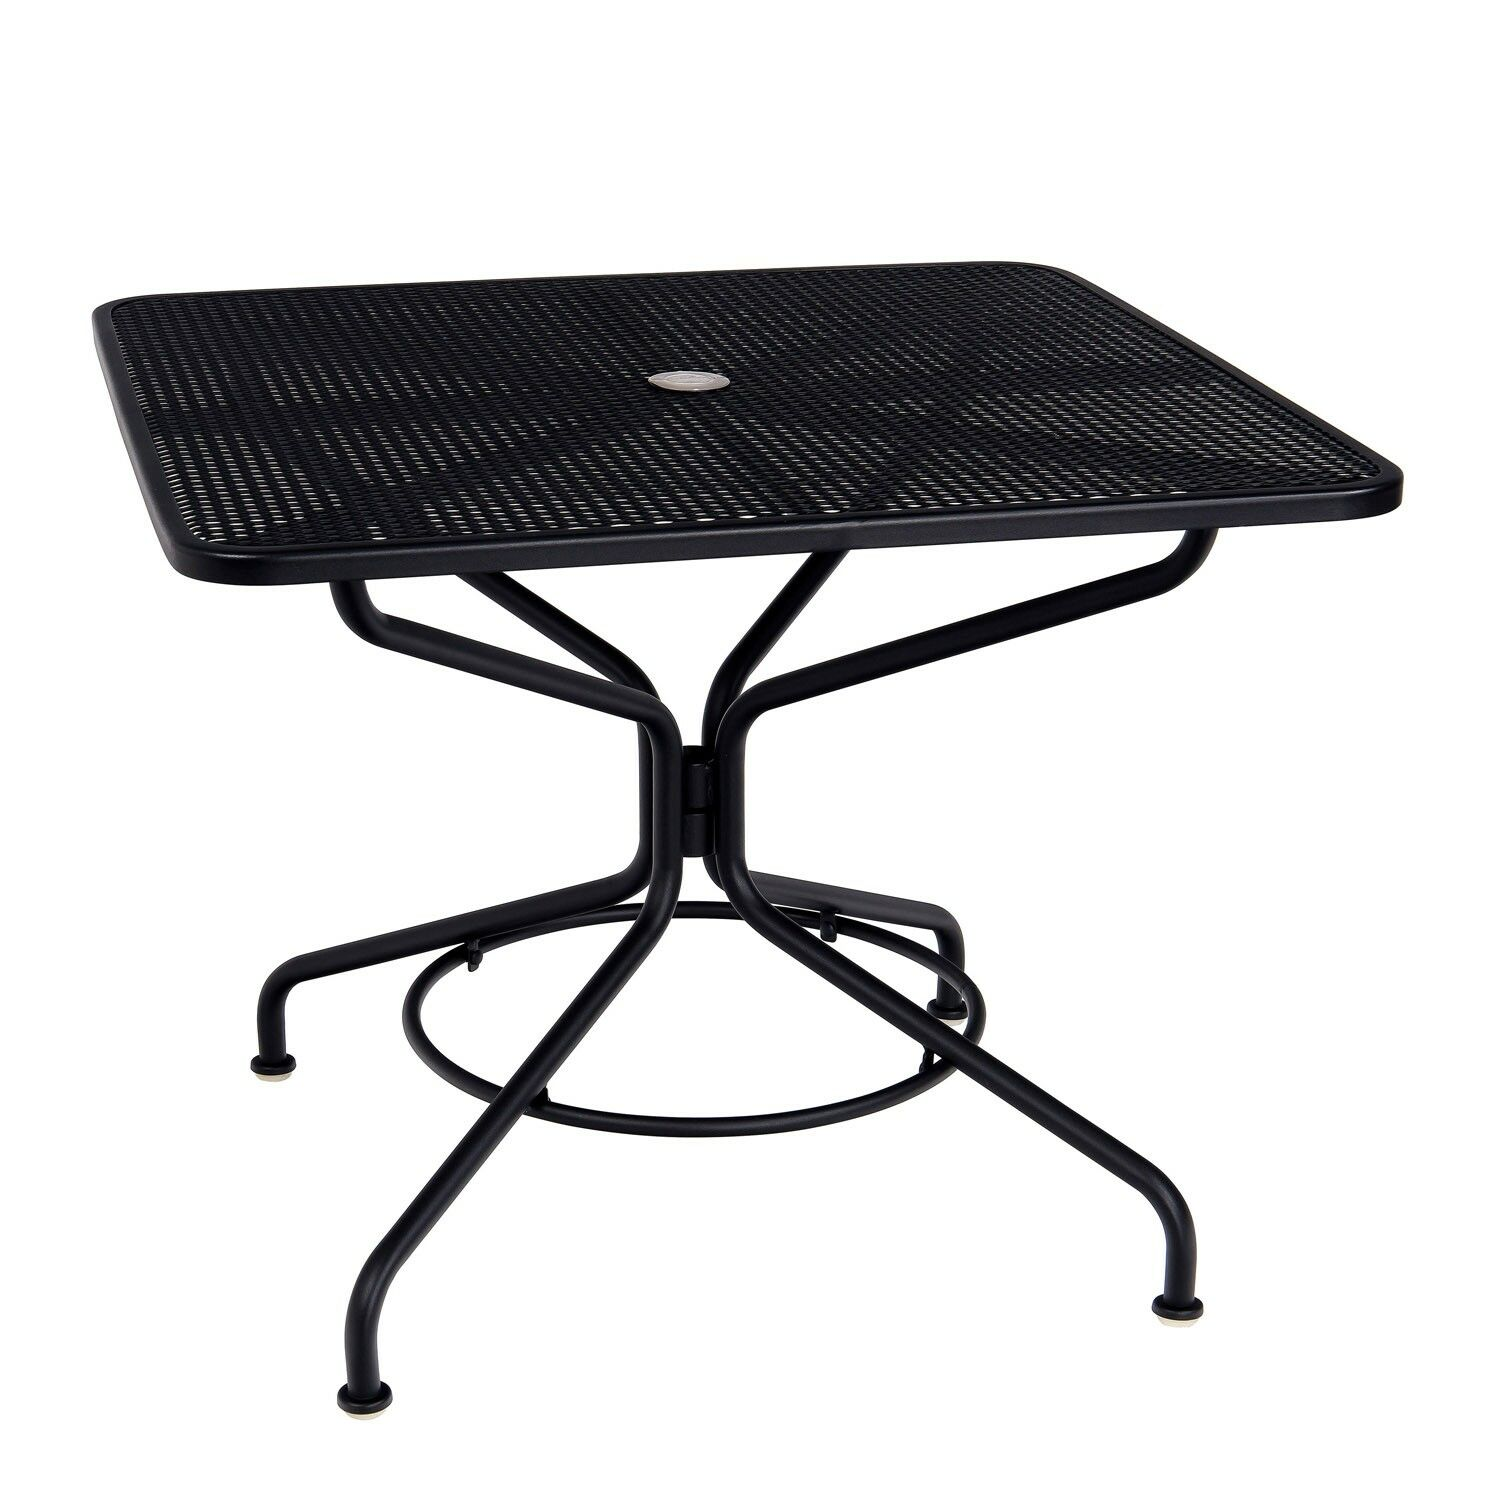 Mesh Top Dining Table Frame Color: Textured Black